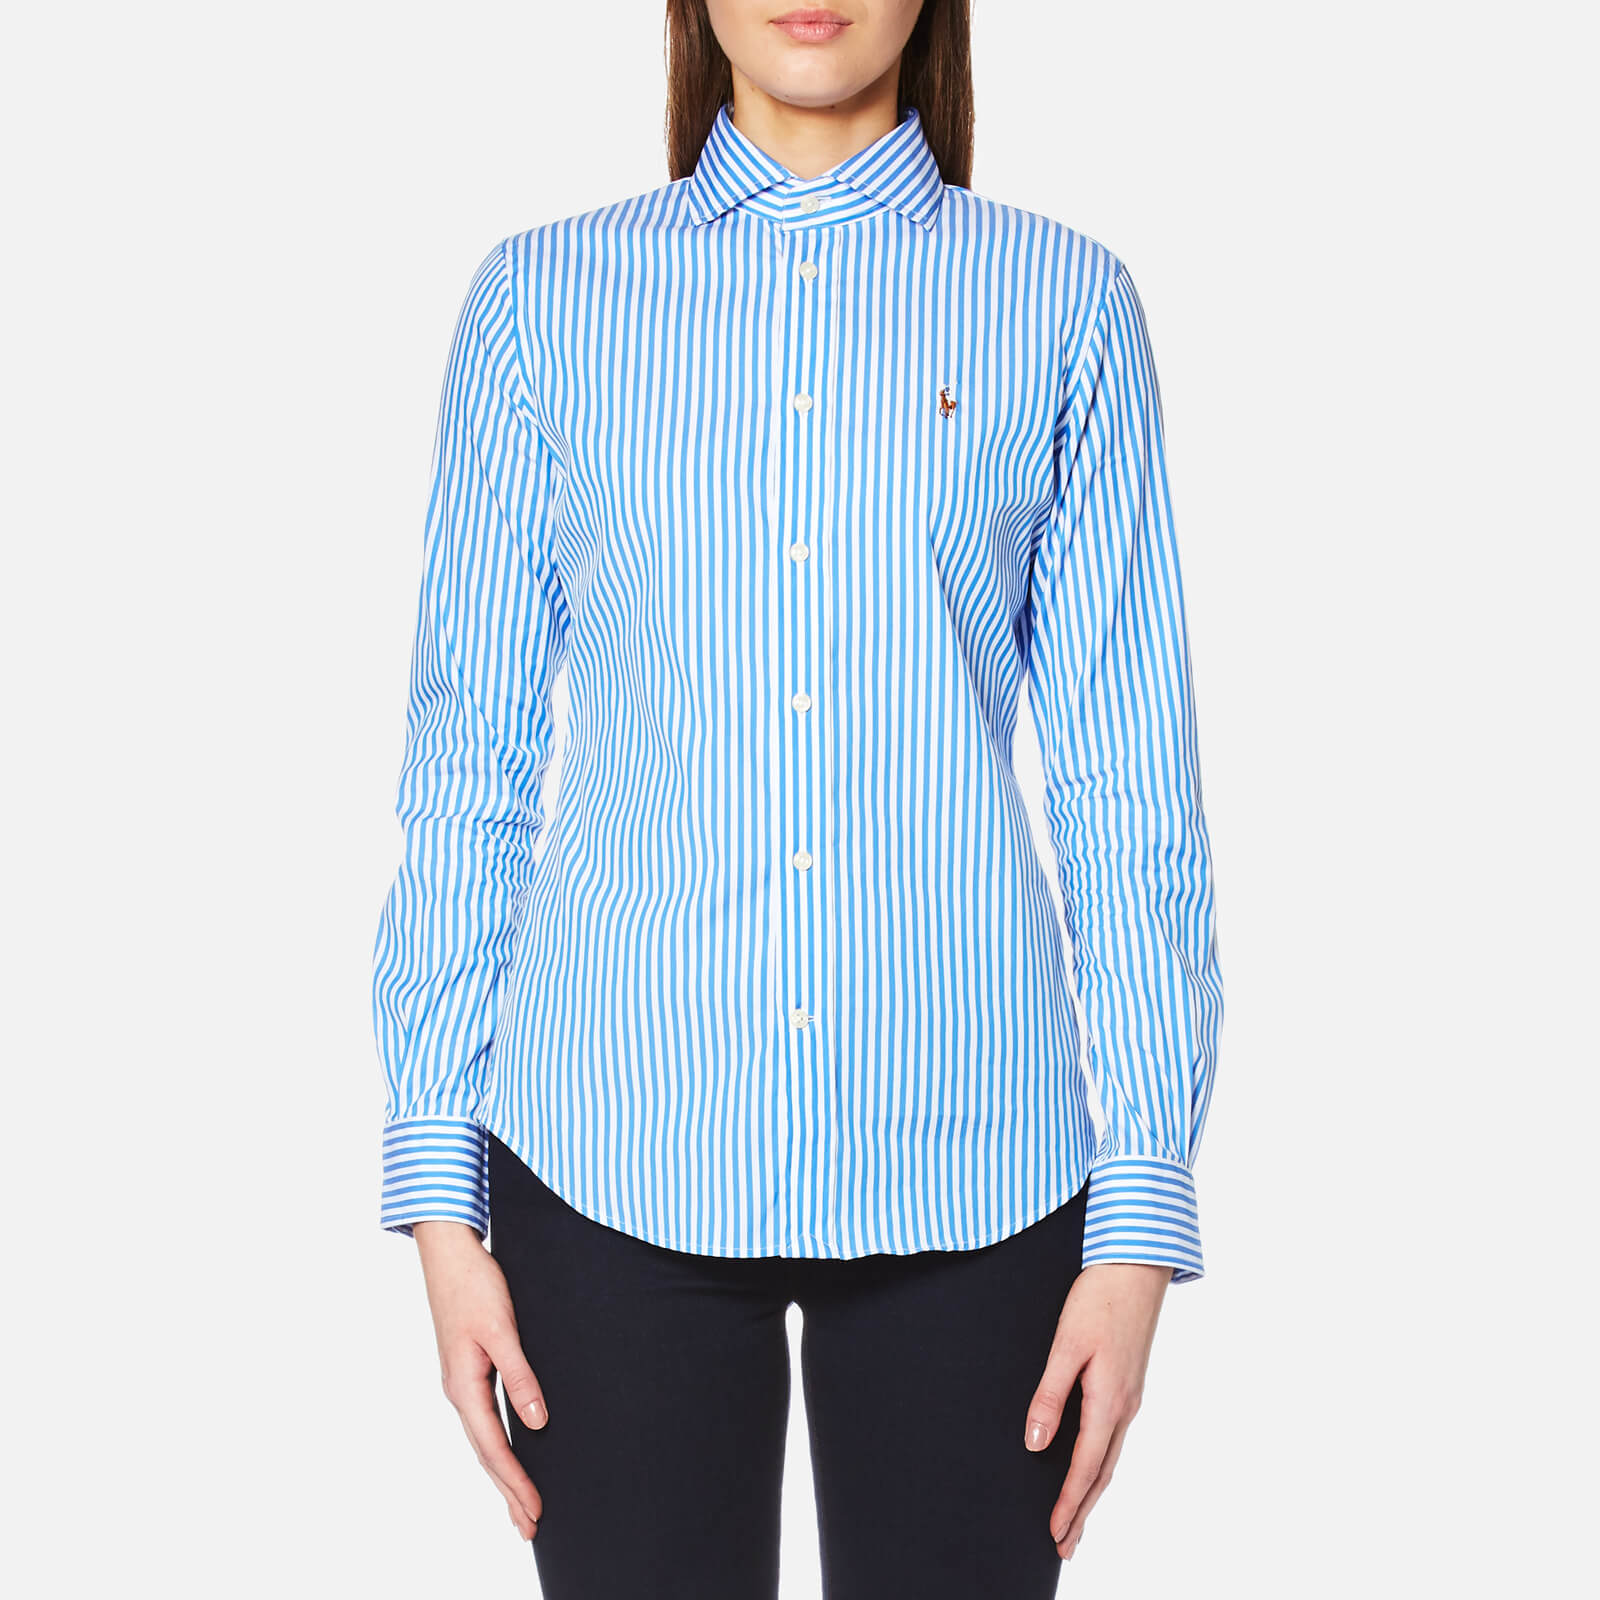 f0dc2f47a8 Polo Ralph Lauren Women's Kendal Stripe Shirt - Blue/White